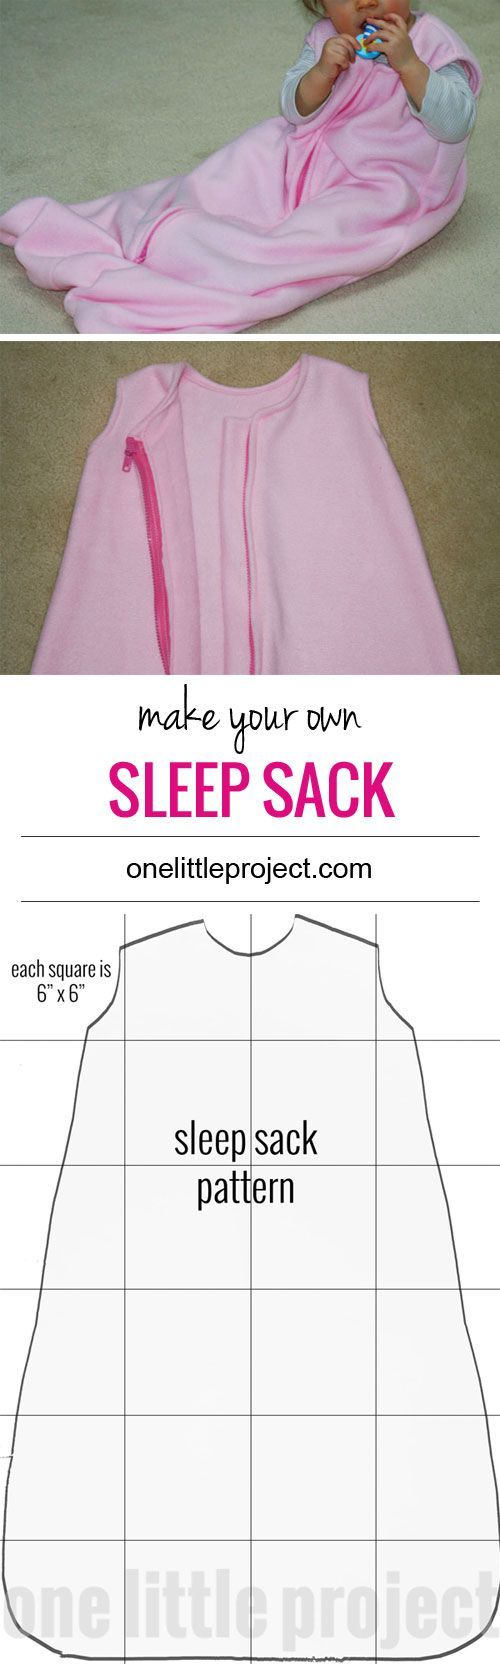 It's not that difficult to make your own sleep sack, so I decided to try it. It certainly beats paying thirty dollars for another one!